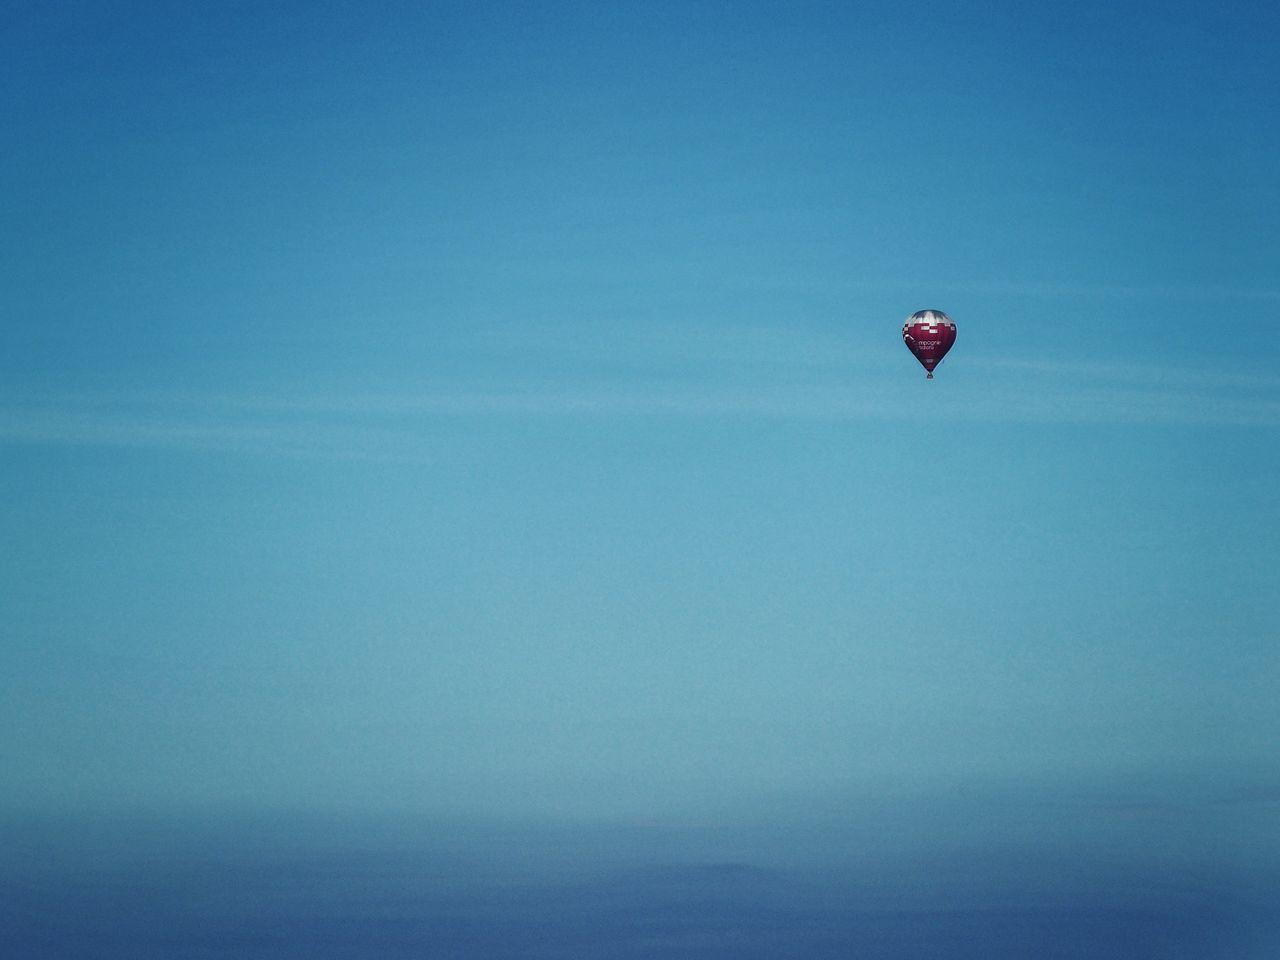 mid-air, flying, parachute, day, nature, sea, adventure, clear sky, outdoors, sky, beauty in nature, no people, hot air balloon, paragliding